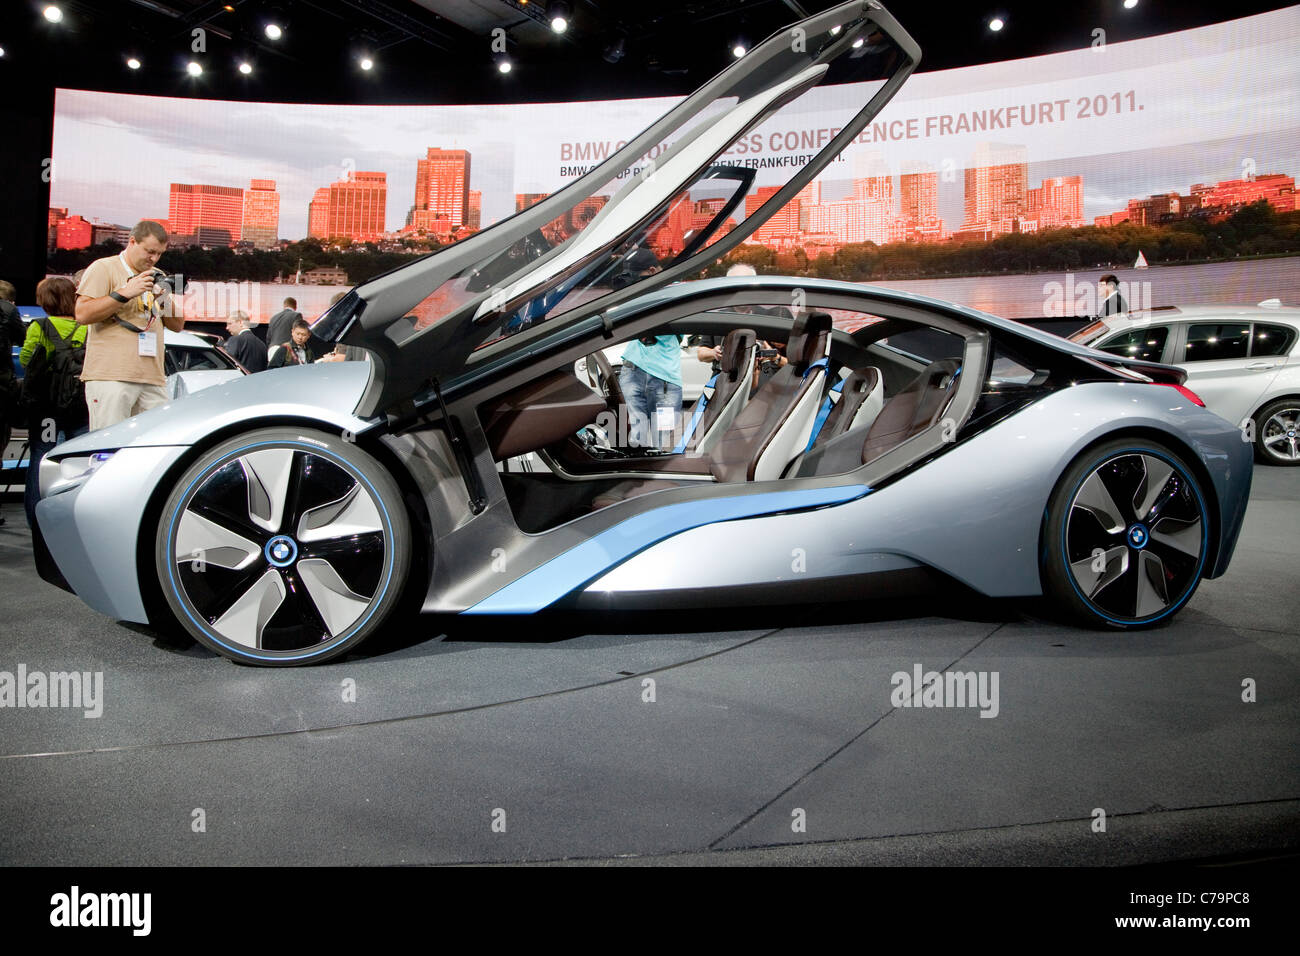 Nouvelle BMW i8 Concept électrique Caron l'IAA 2011 International Motor Show de Francfort am Main, Allemagne Photo Stock